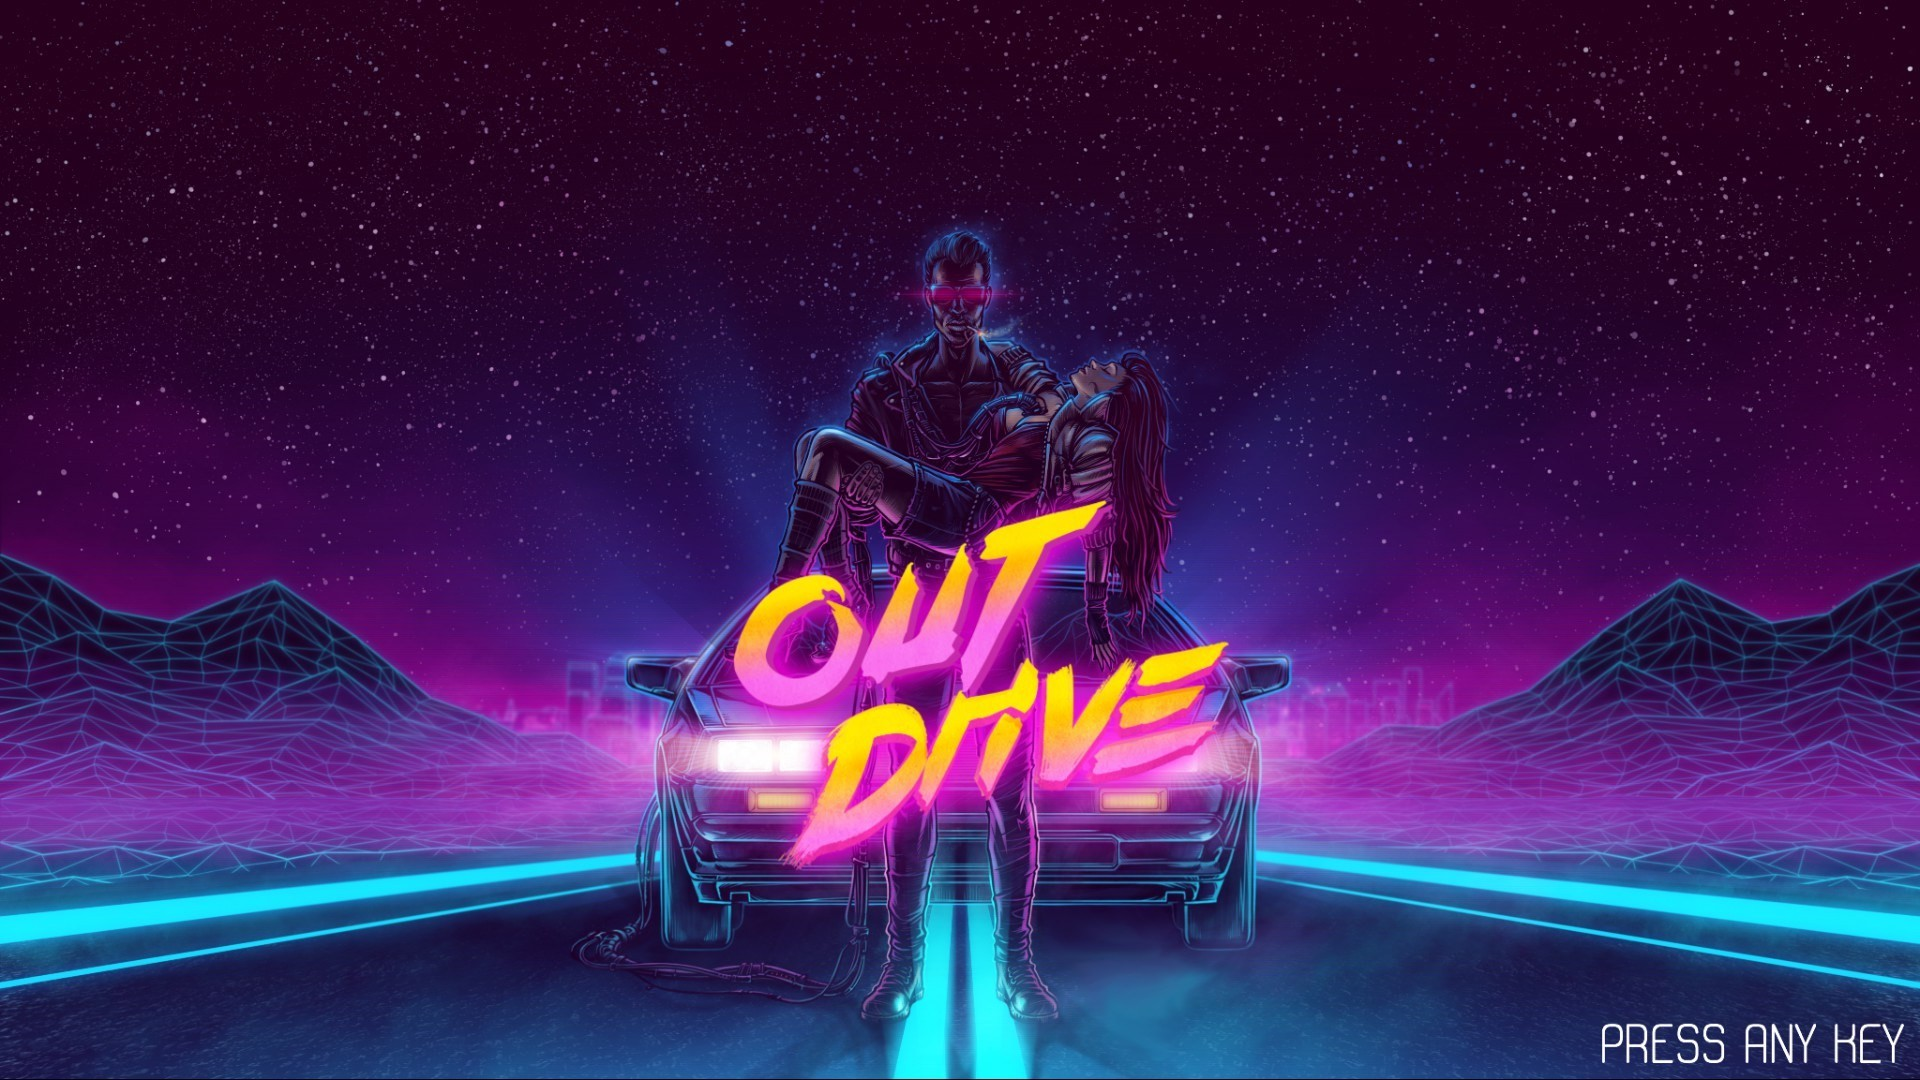 80s Wallpapers (54+ Images